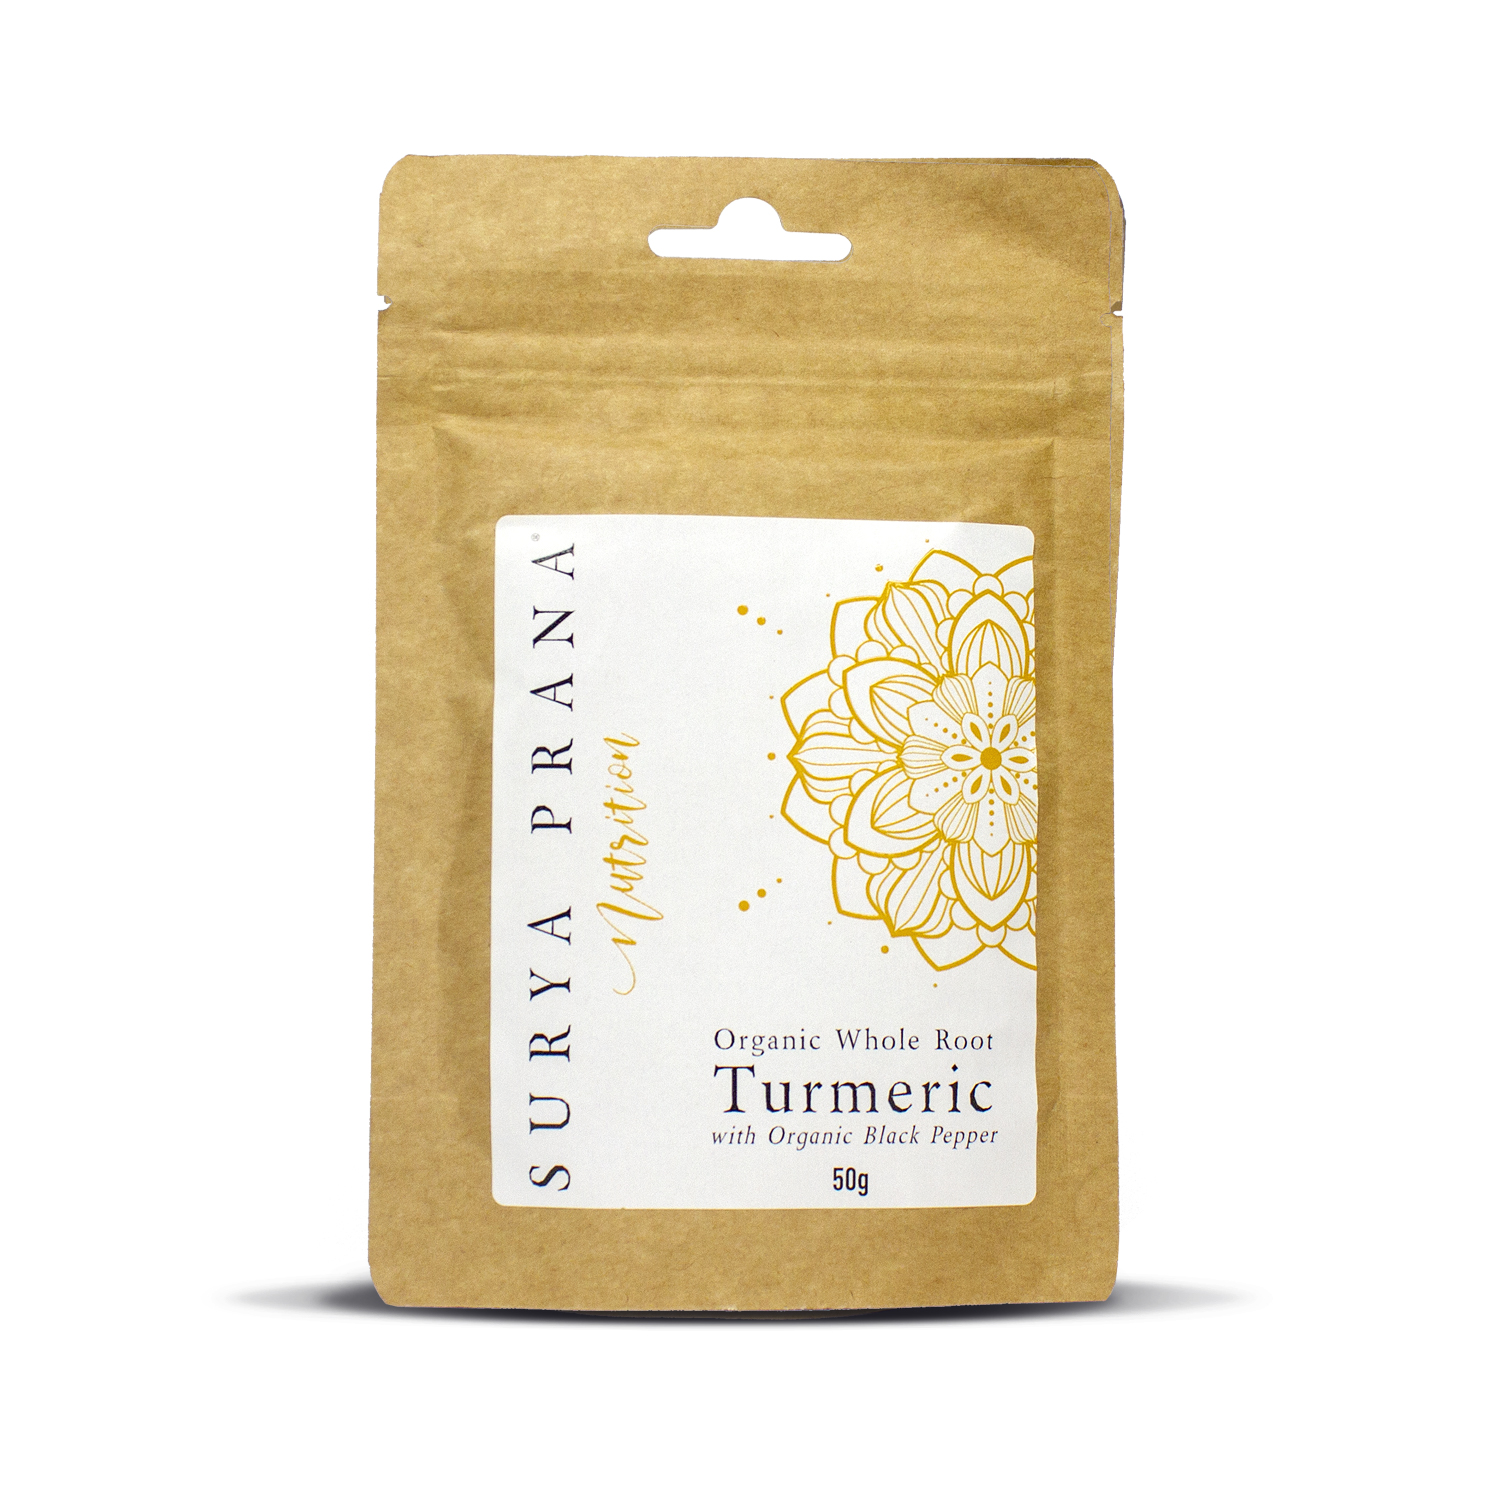 Organic Turmeric with Black Pepper 50g (Currently Unavailable)